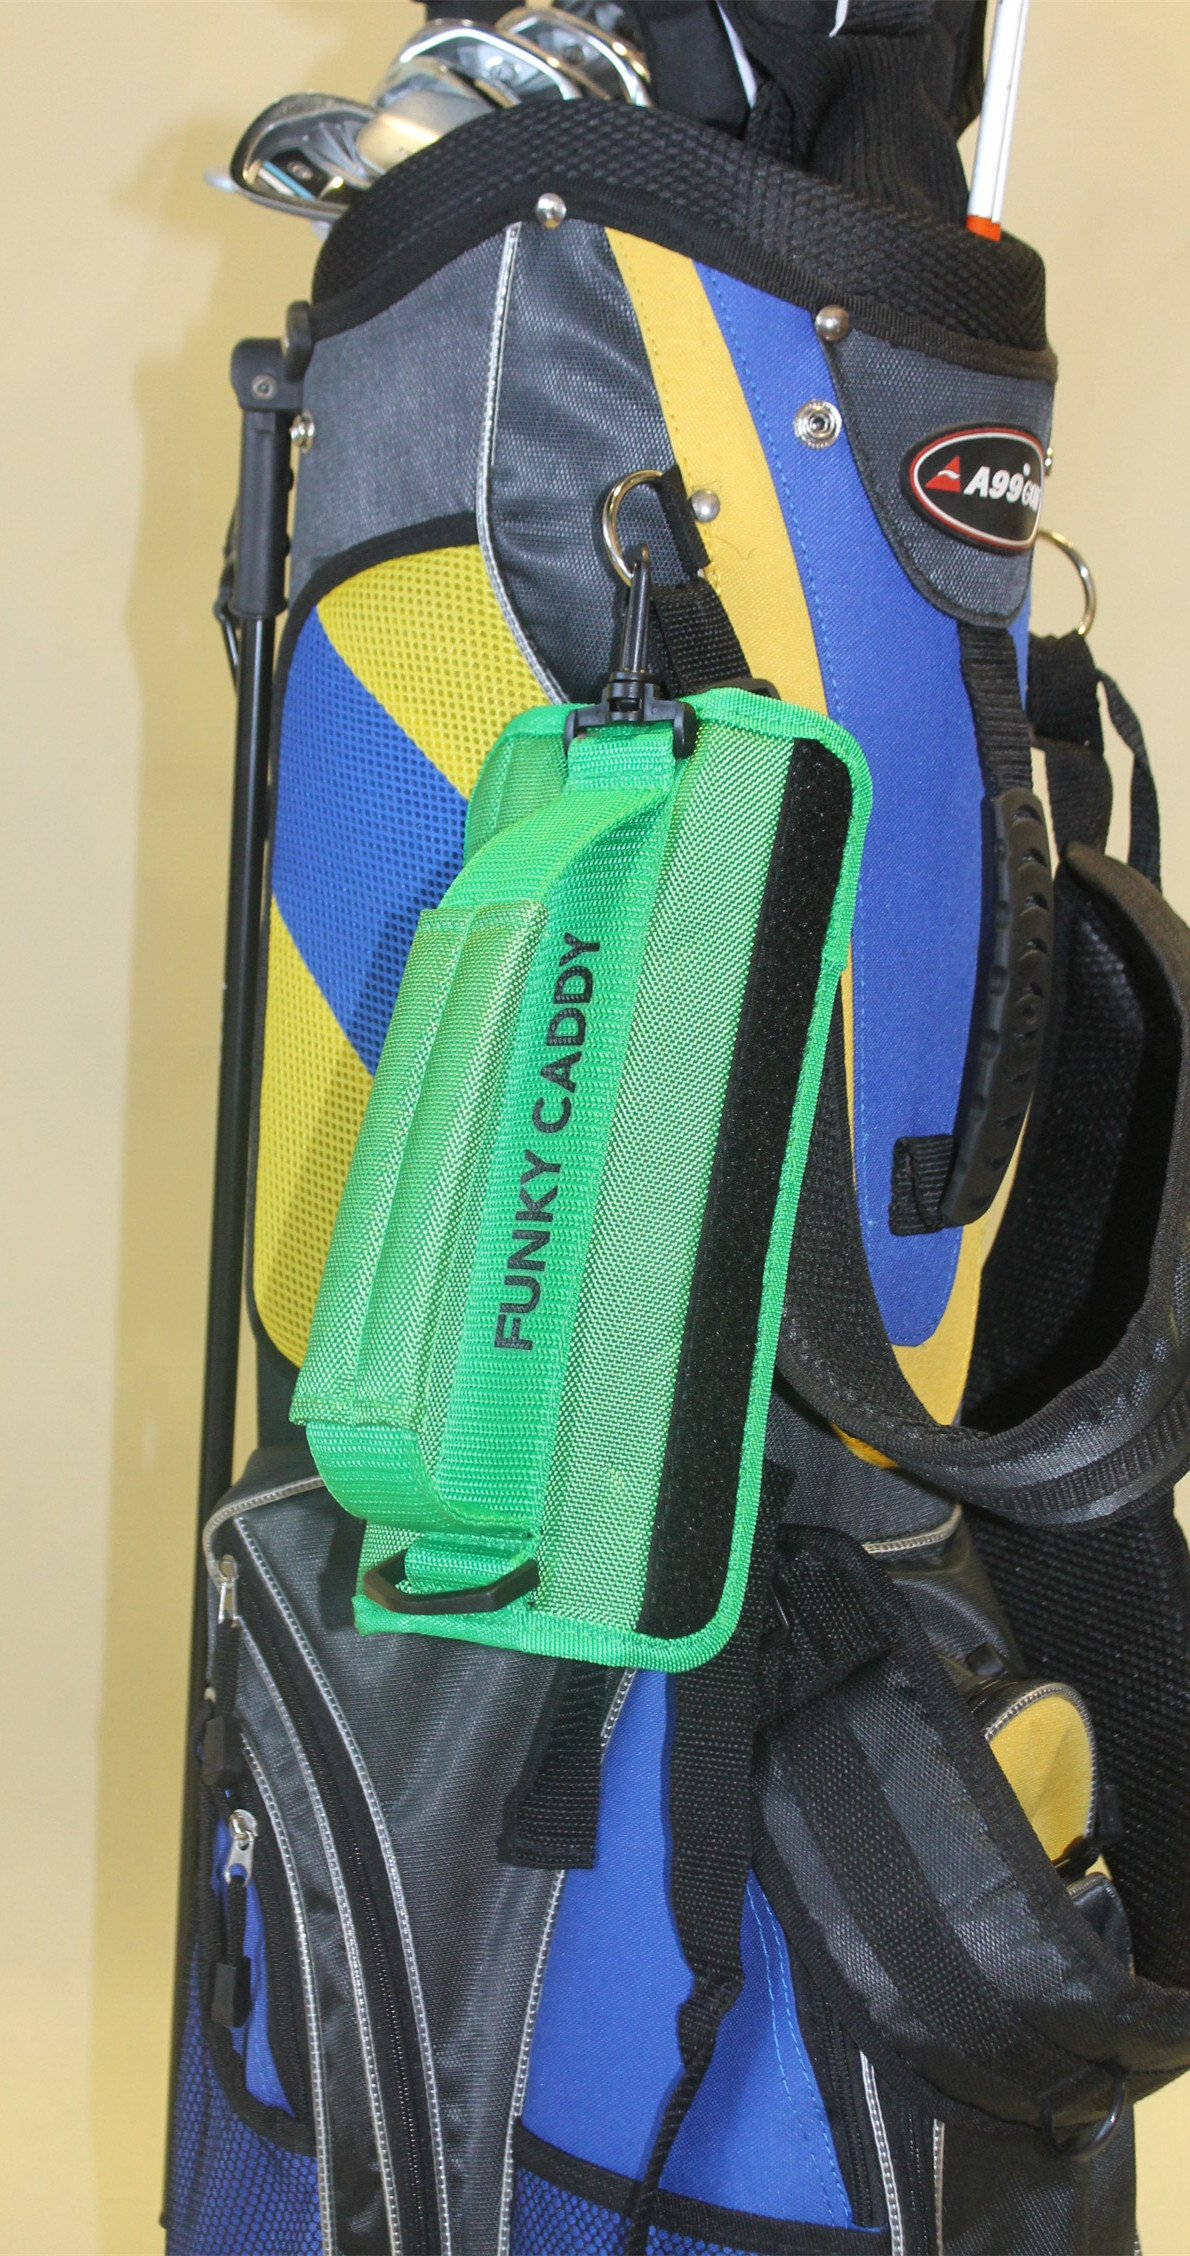 C12 A99 Golf Funky Caddy Golf Bag Driving Range Carrier Sleeve Light with velcro by A99 Golf (Image #3)